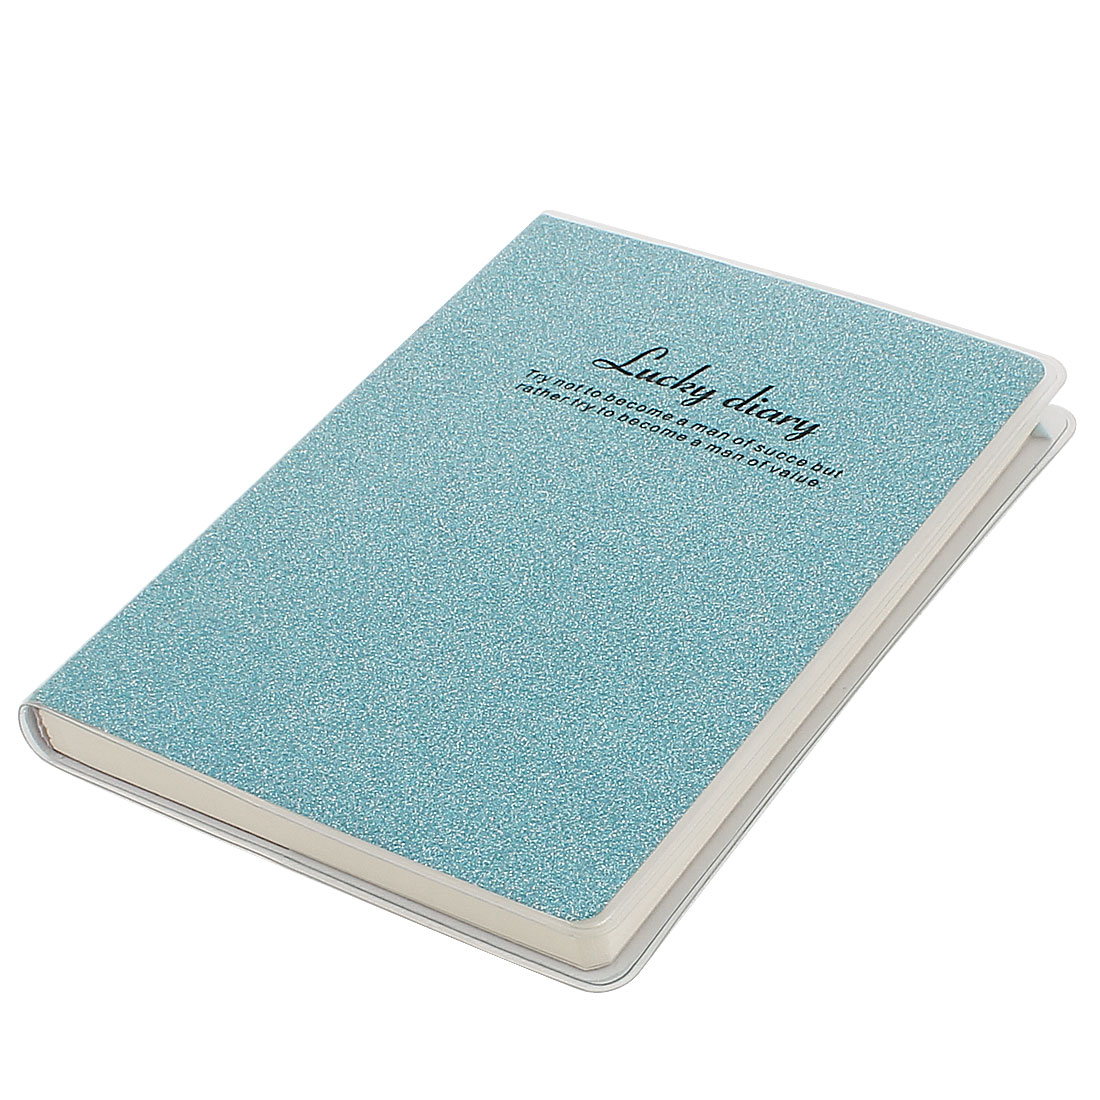 PVC Cover Aqua Glitter Powder Decor Diary Memo Book Notepad 80 Sheets